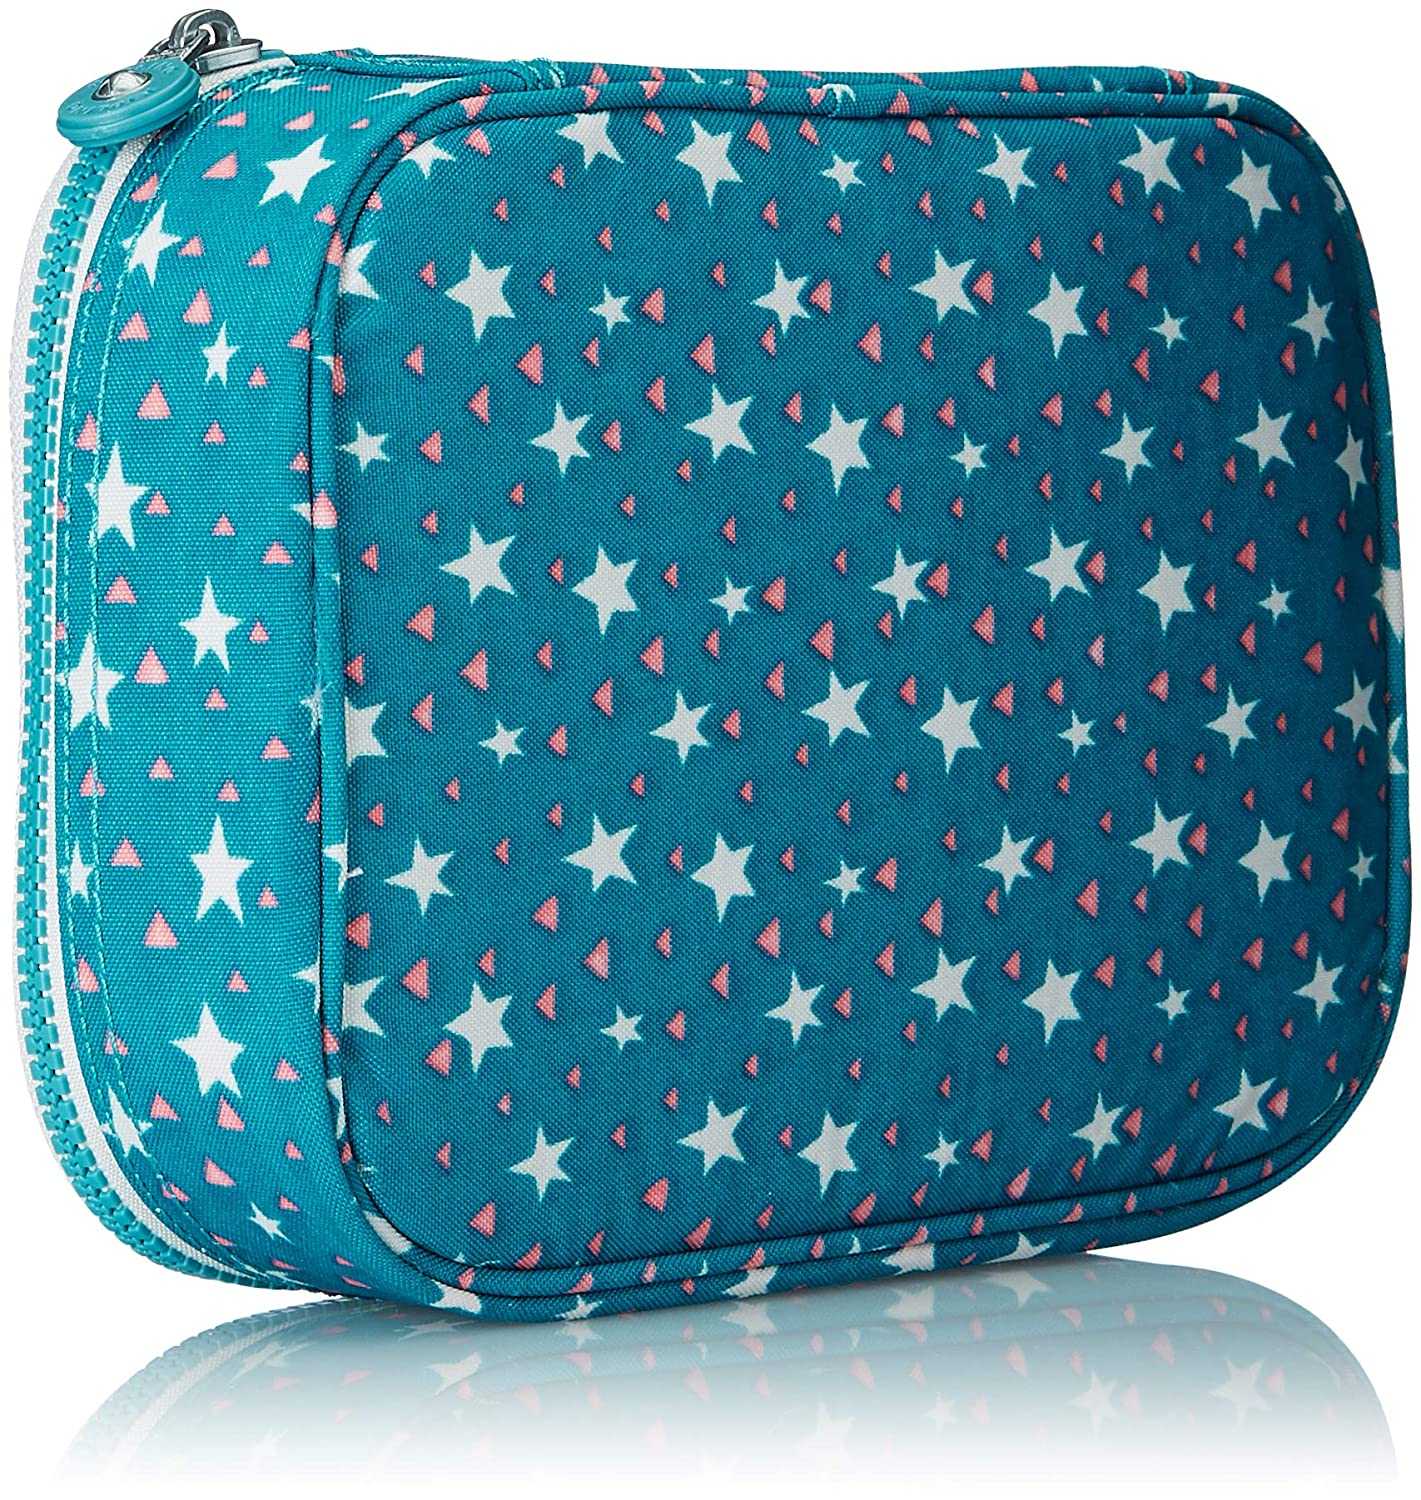 Kipling 100 PENS Pencil Cases, 21 cm, 1.5 liters, Multicolour (Cool Star Girl)